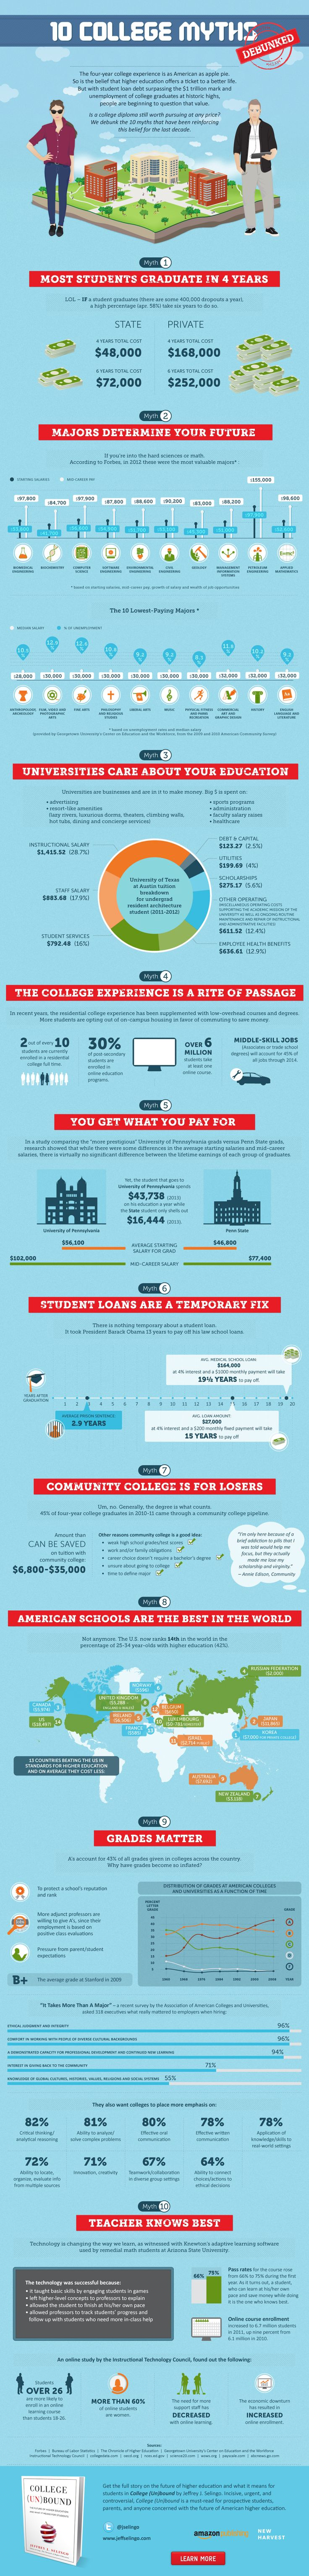 9 best Trends in Higher Ed images on Pinterest | College students ...